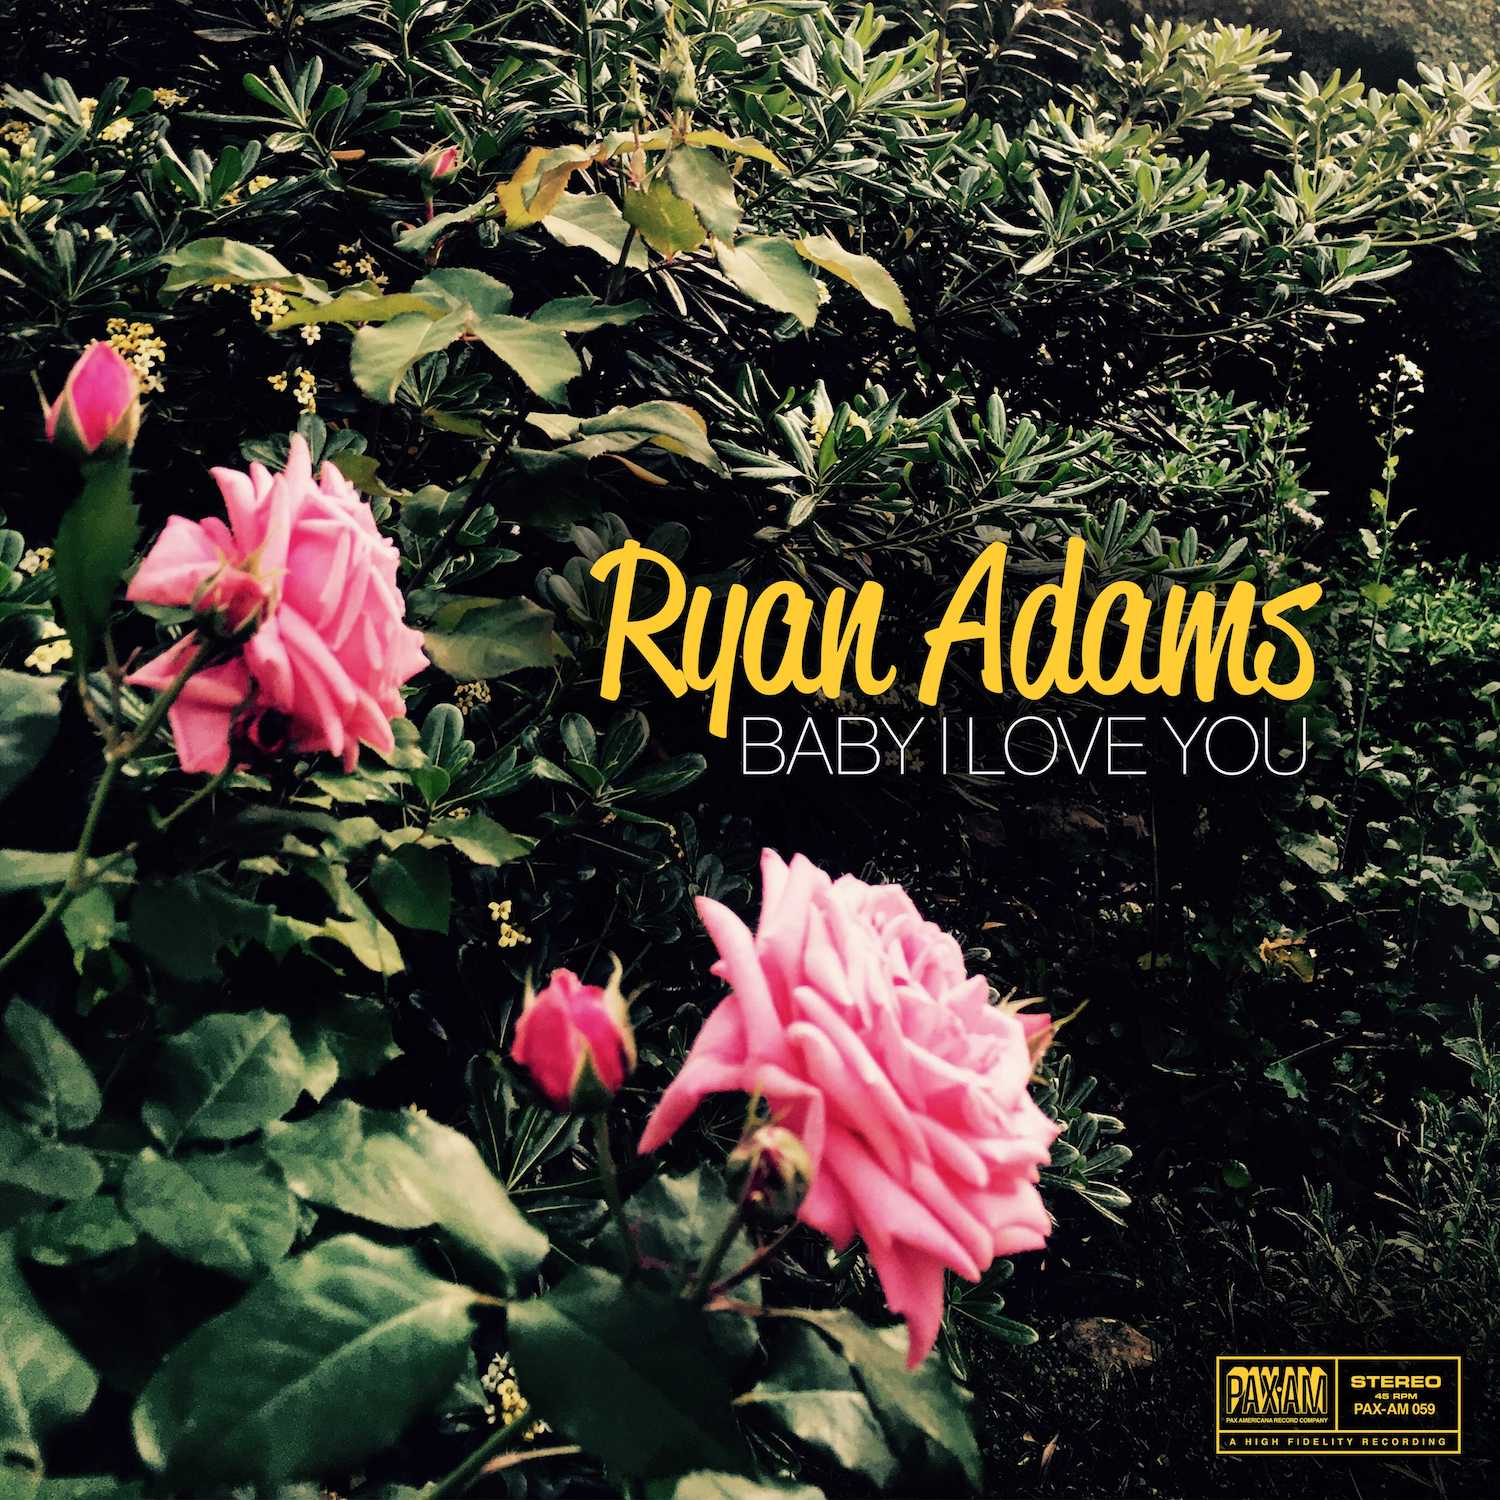 Ryan Adams - Baby I Love You [Limited Edition Vinyl Single]